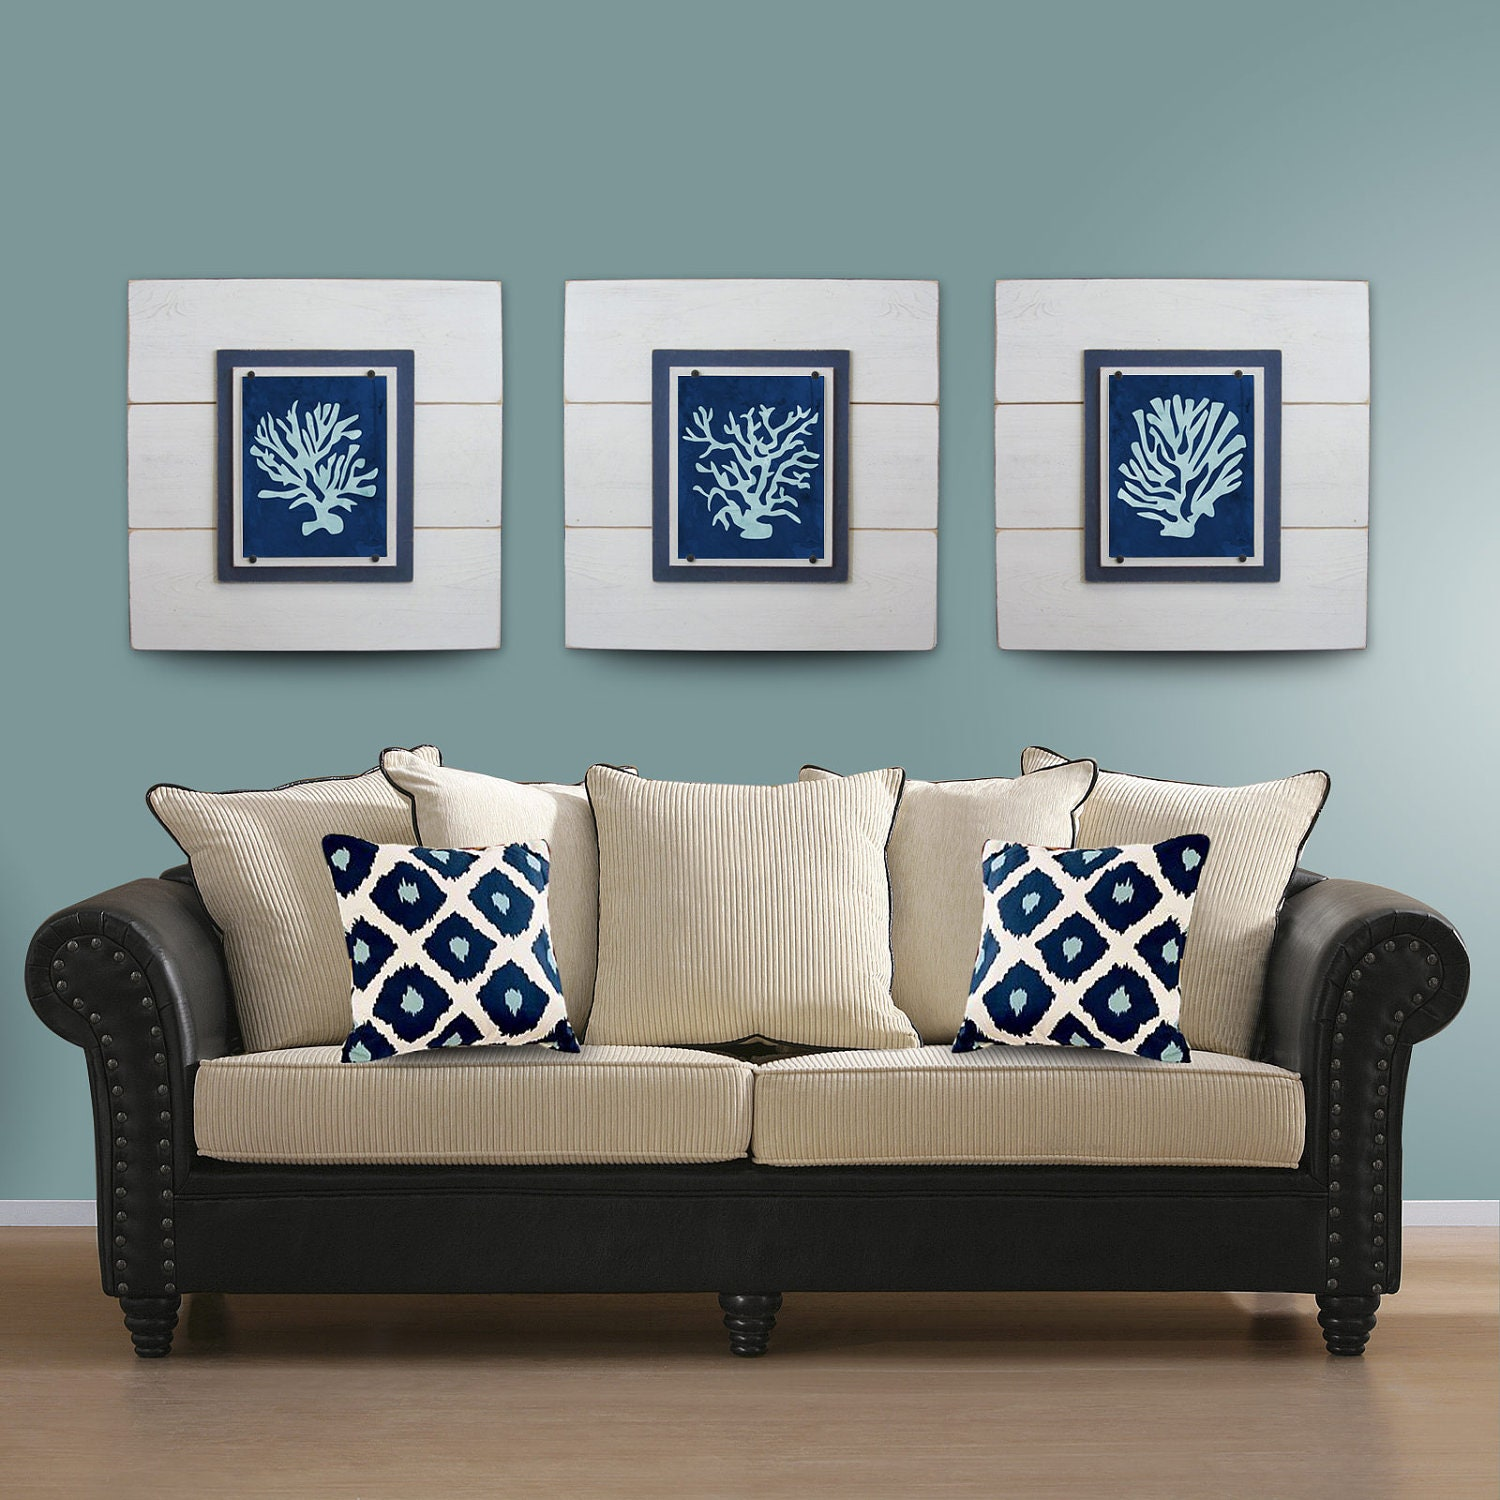 Wall Art Sets Salecoral Wall Art Set Of 3 White Framed 8X10 Xtra Large